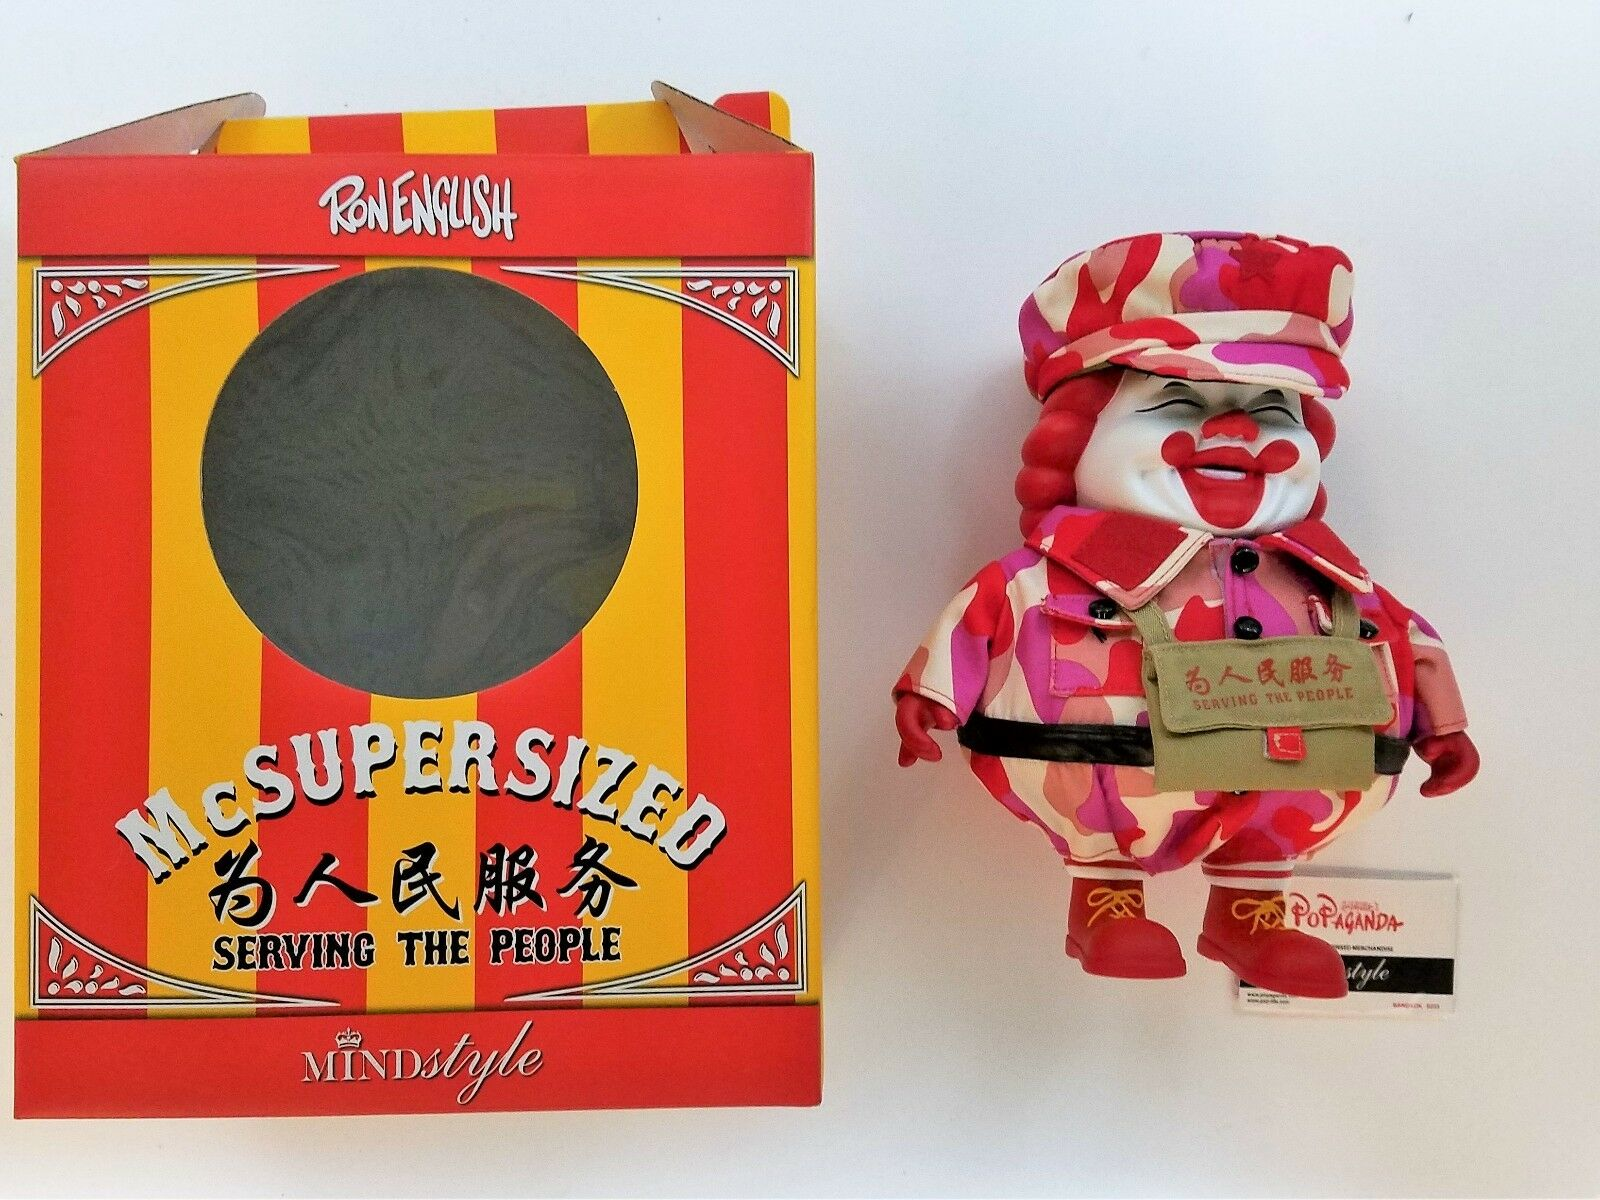 Ron English MC Supersized Camo Serving the People Bangkok Edition Exclusive